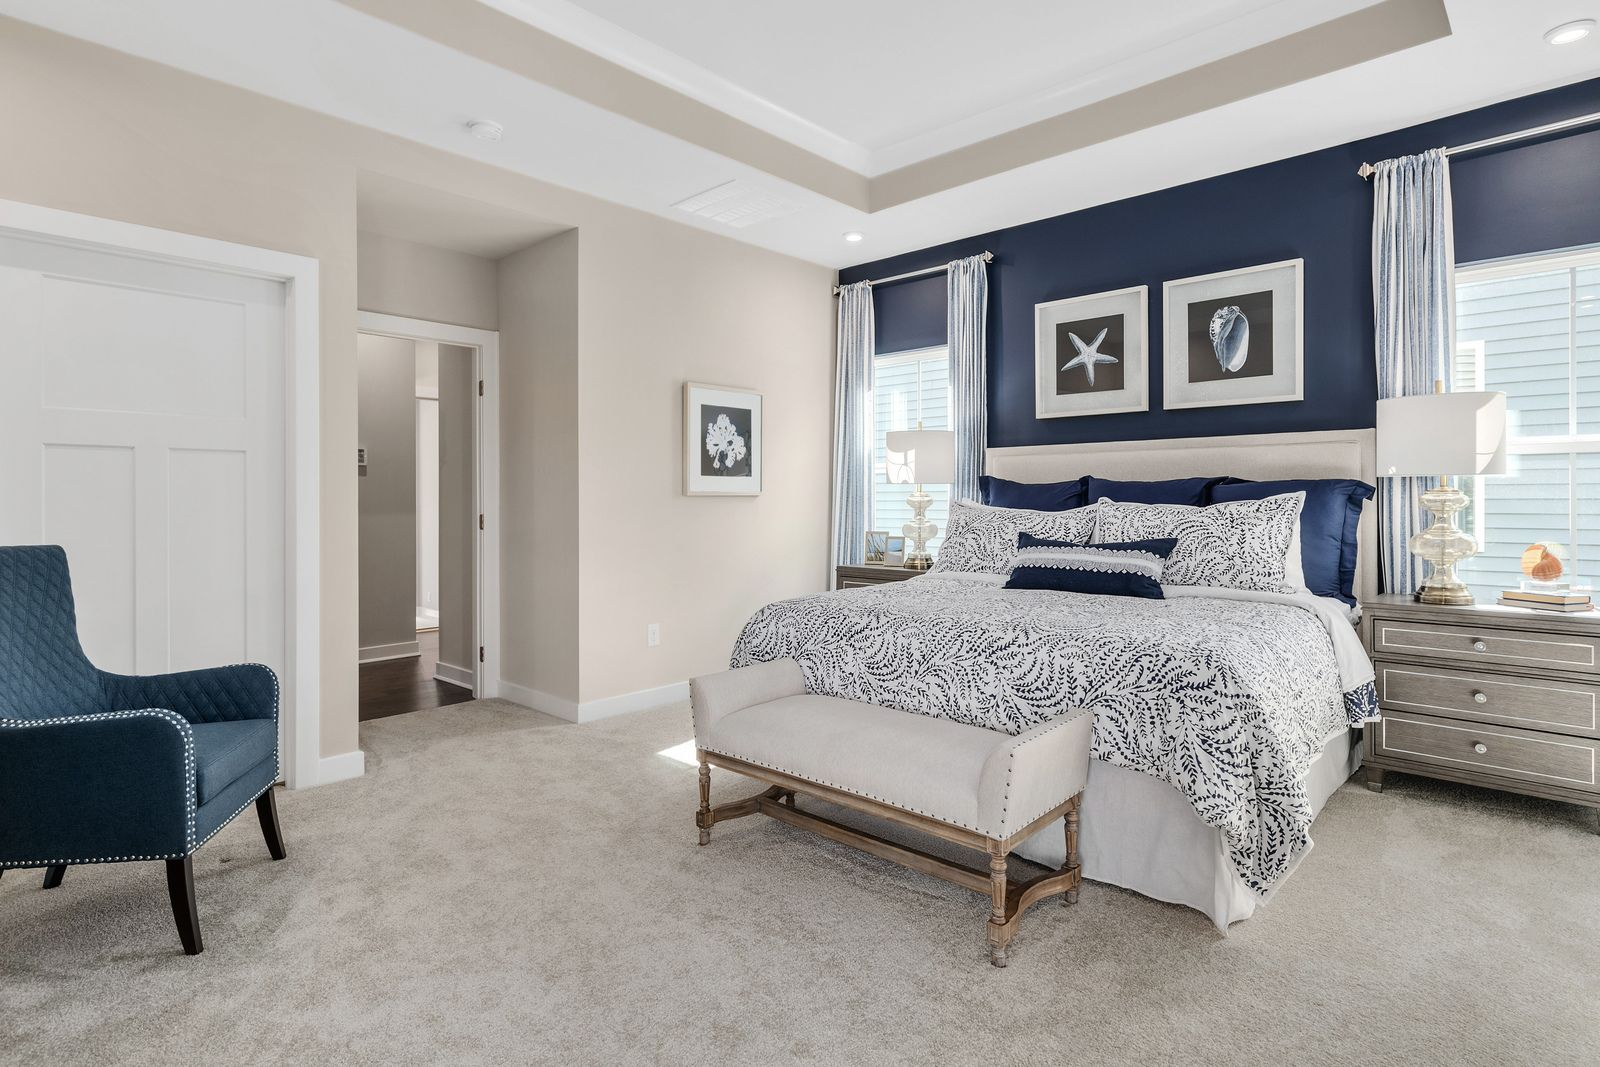 Bedroom featured in the Cumberland By Ryan Homes in Columbia, SC